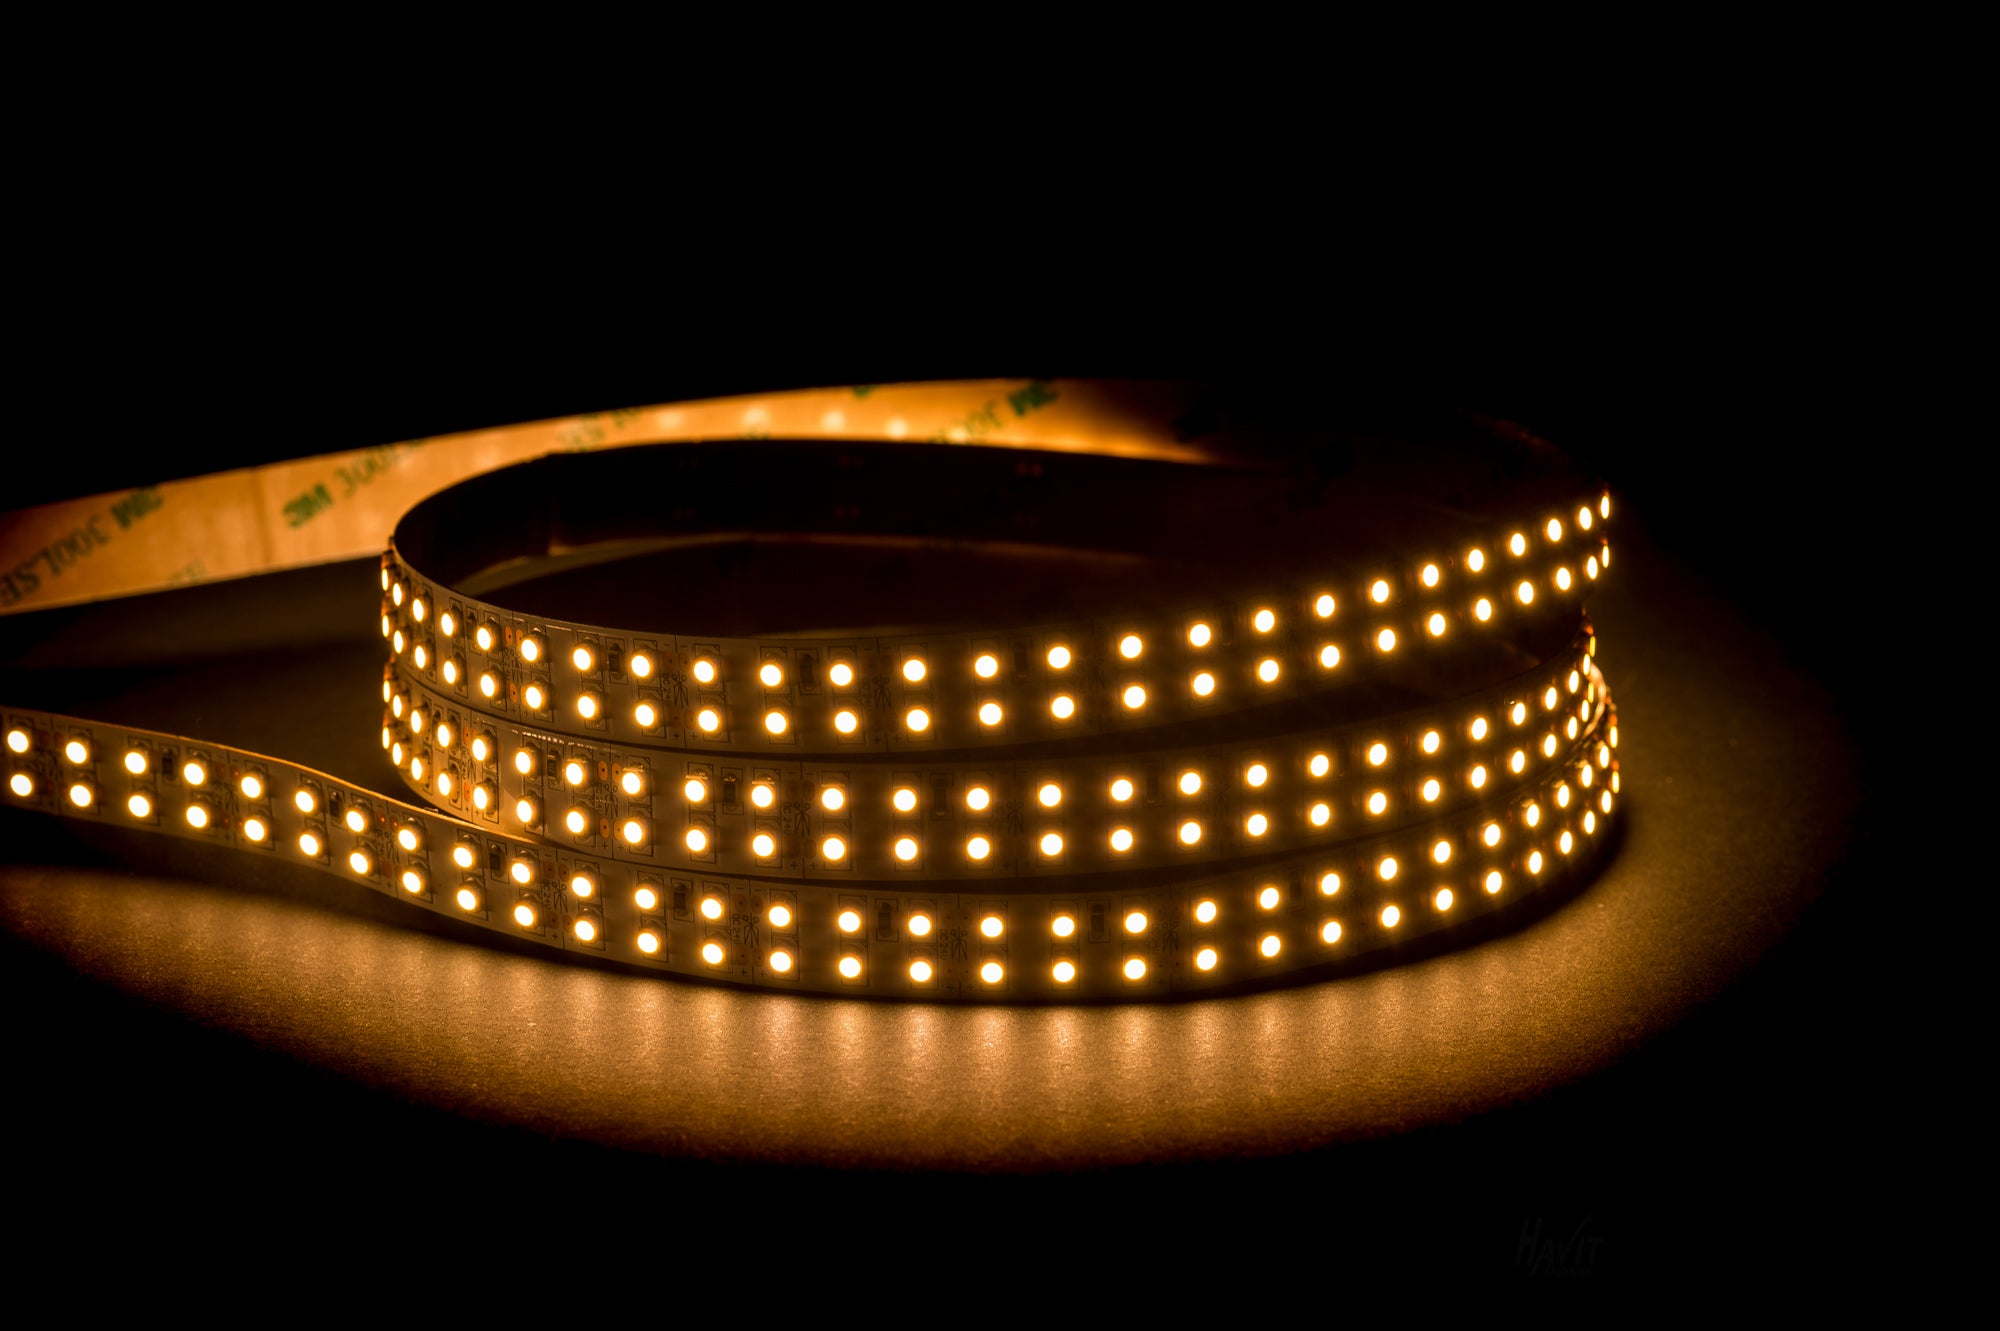 HV9723-IP20-240-3K-2 - 19.2w IP20 LED Strip 3000k